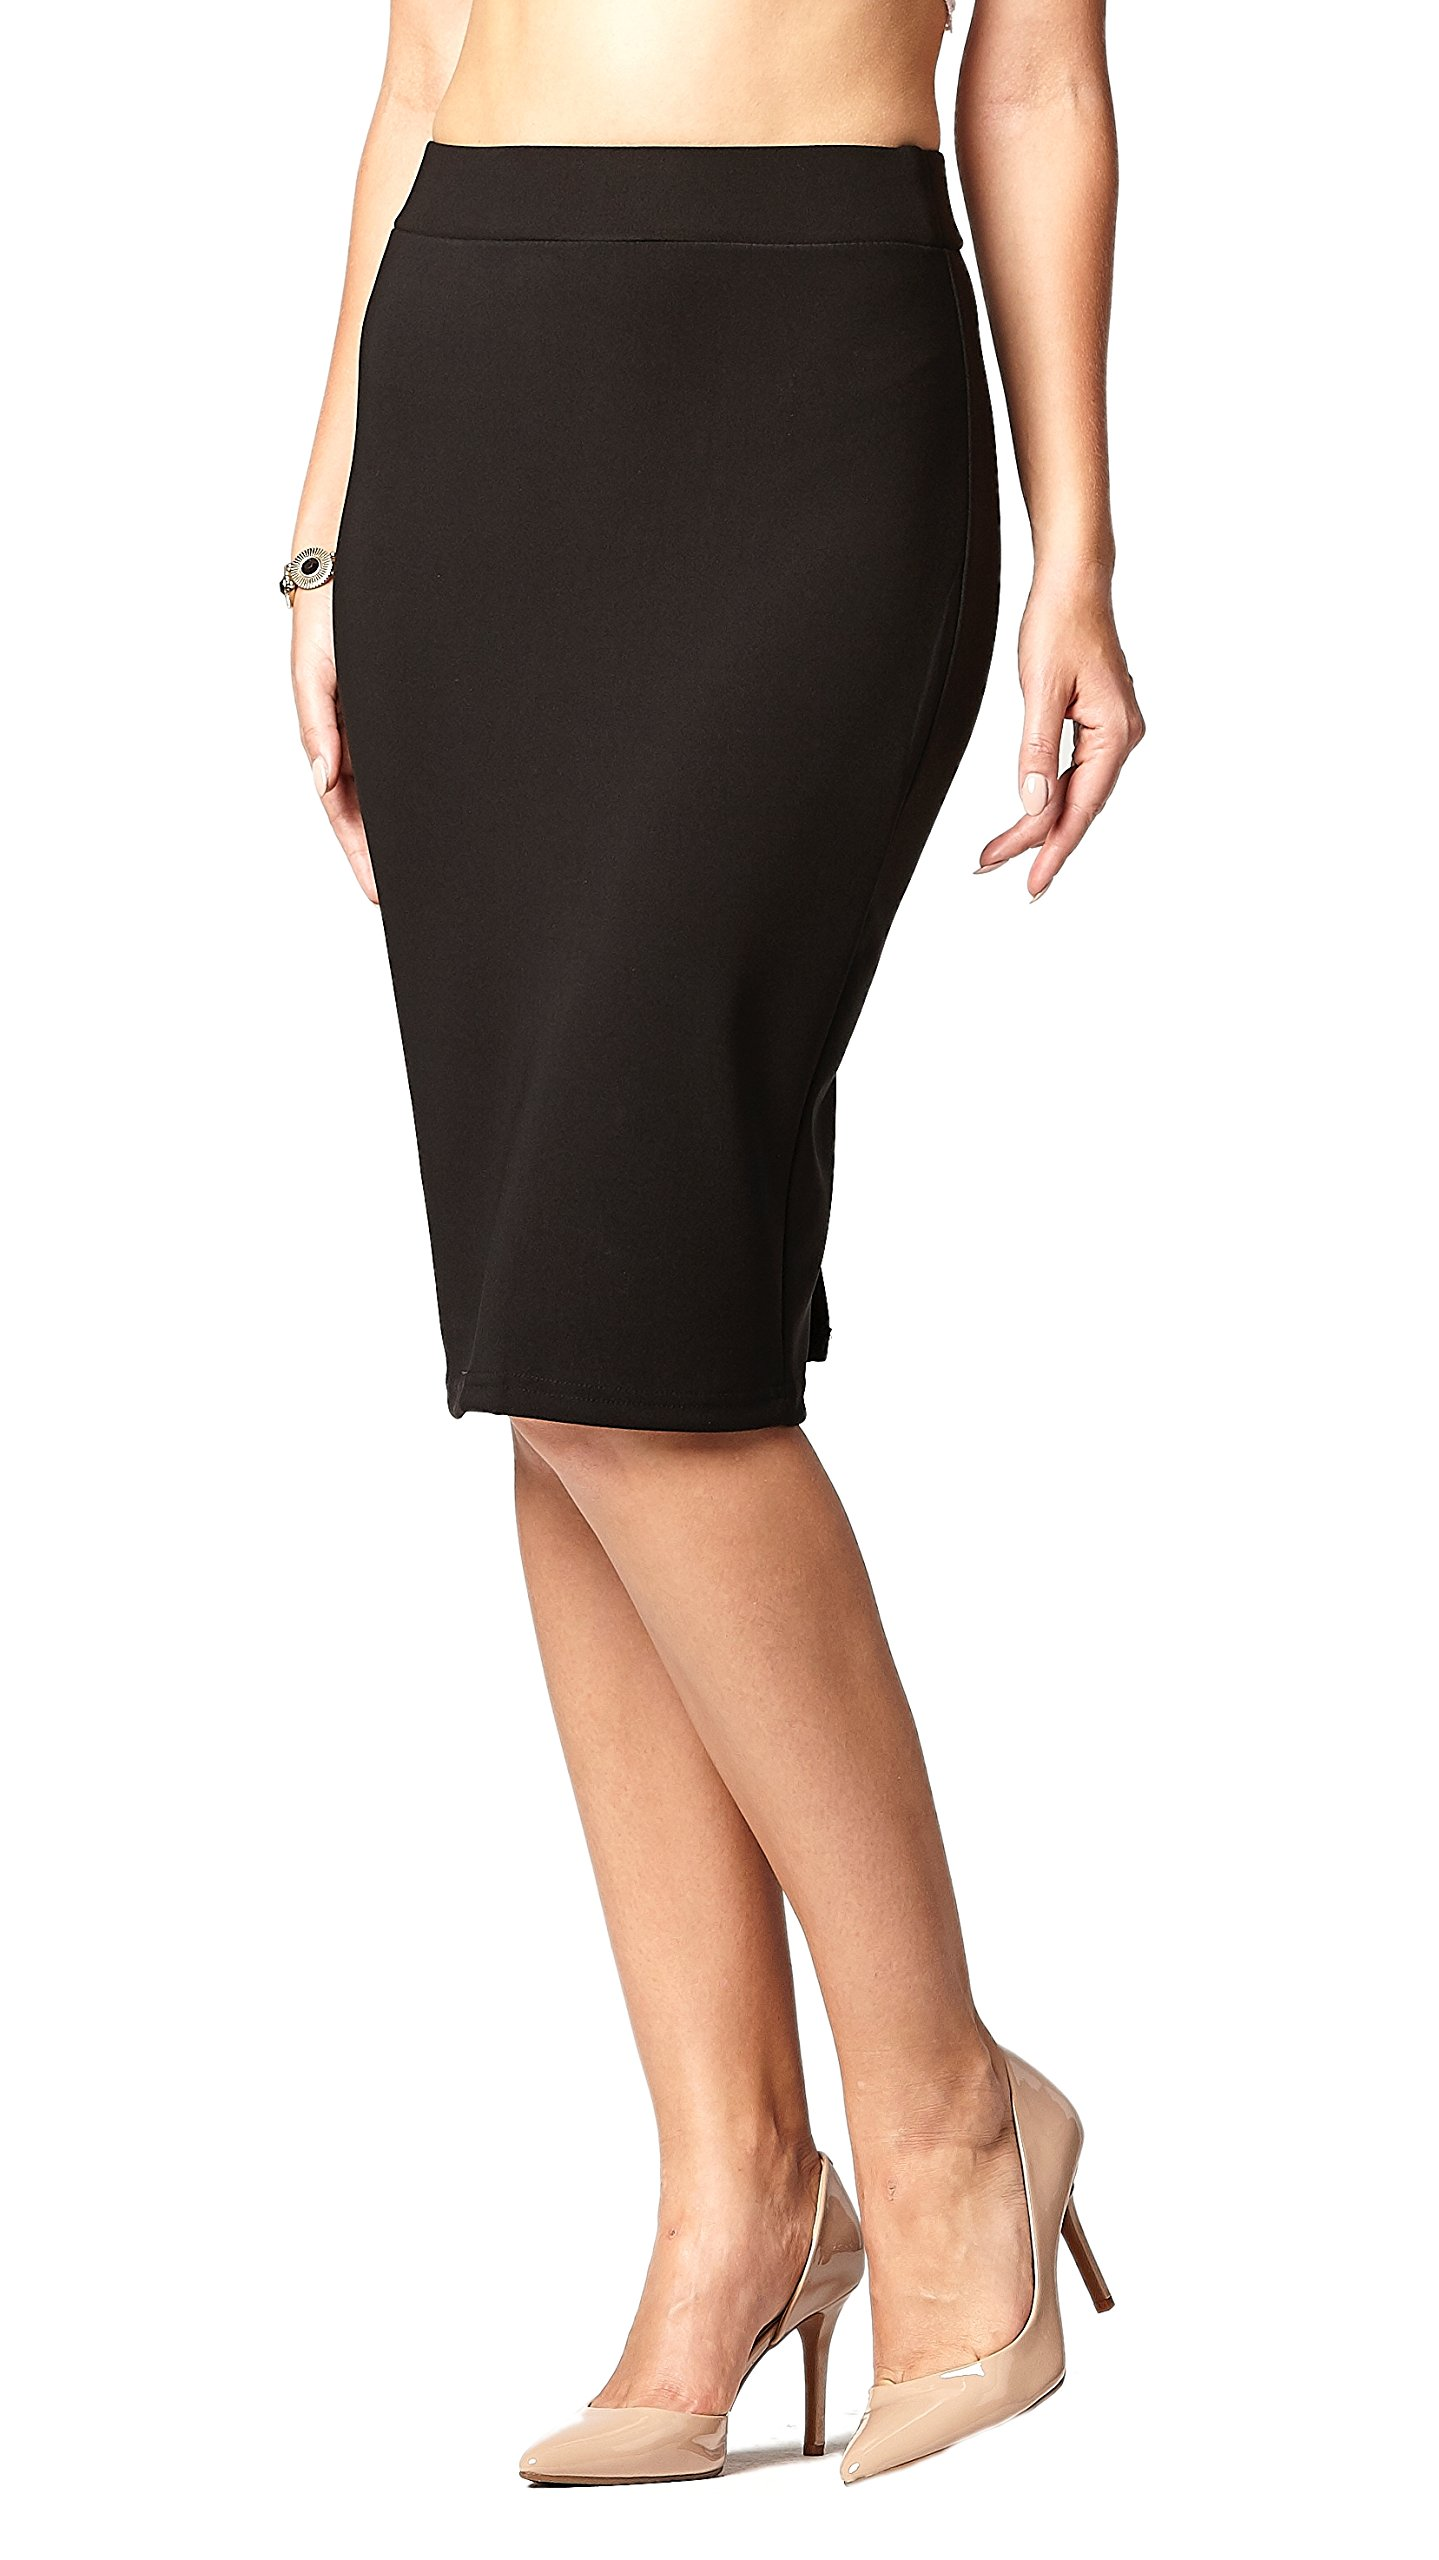 Conceited Premium High Waist Stretch Pencil Skirt - Bodycon - 10 Colors by (3X, Black)